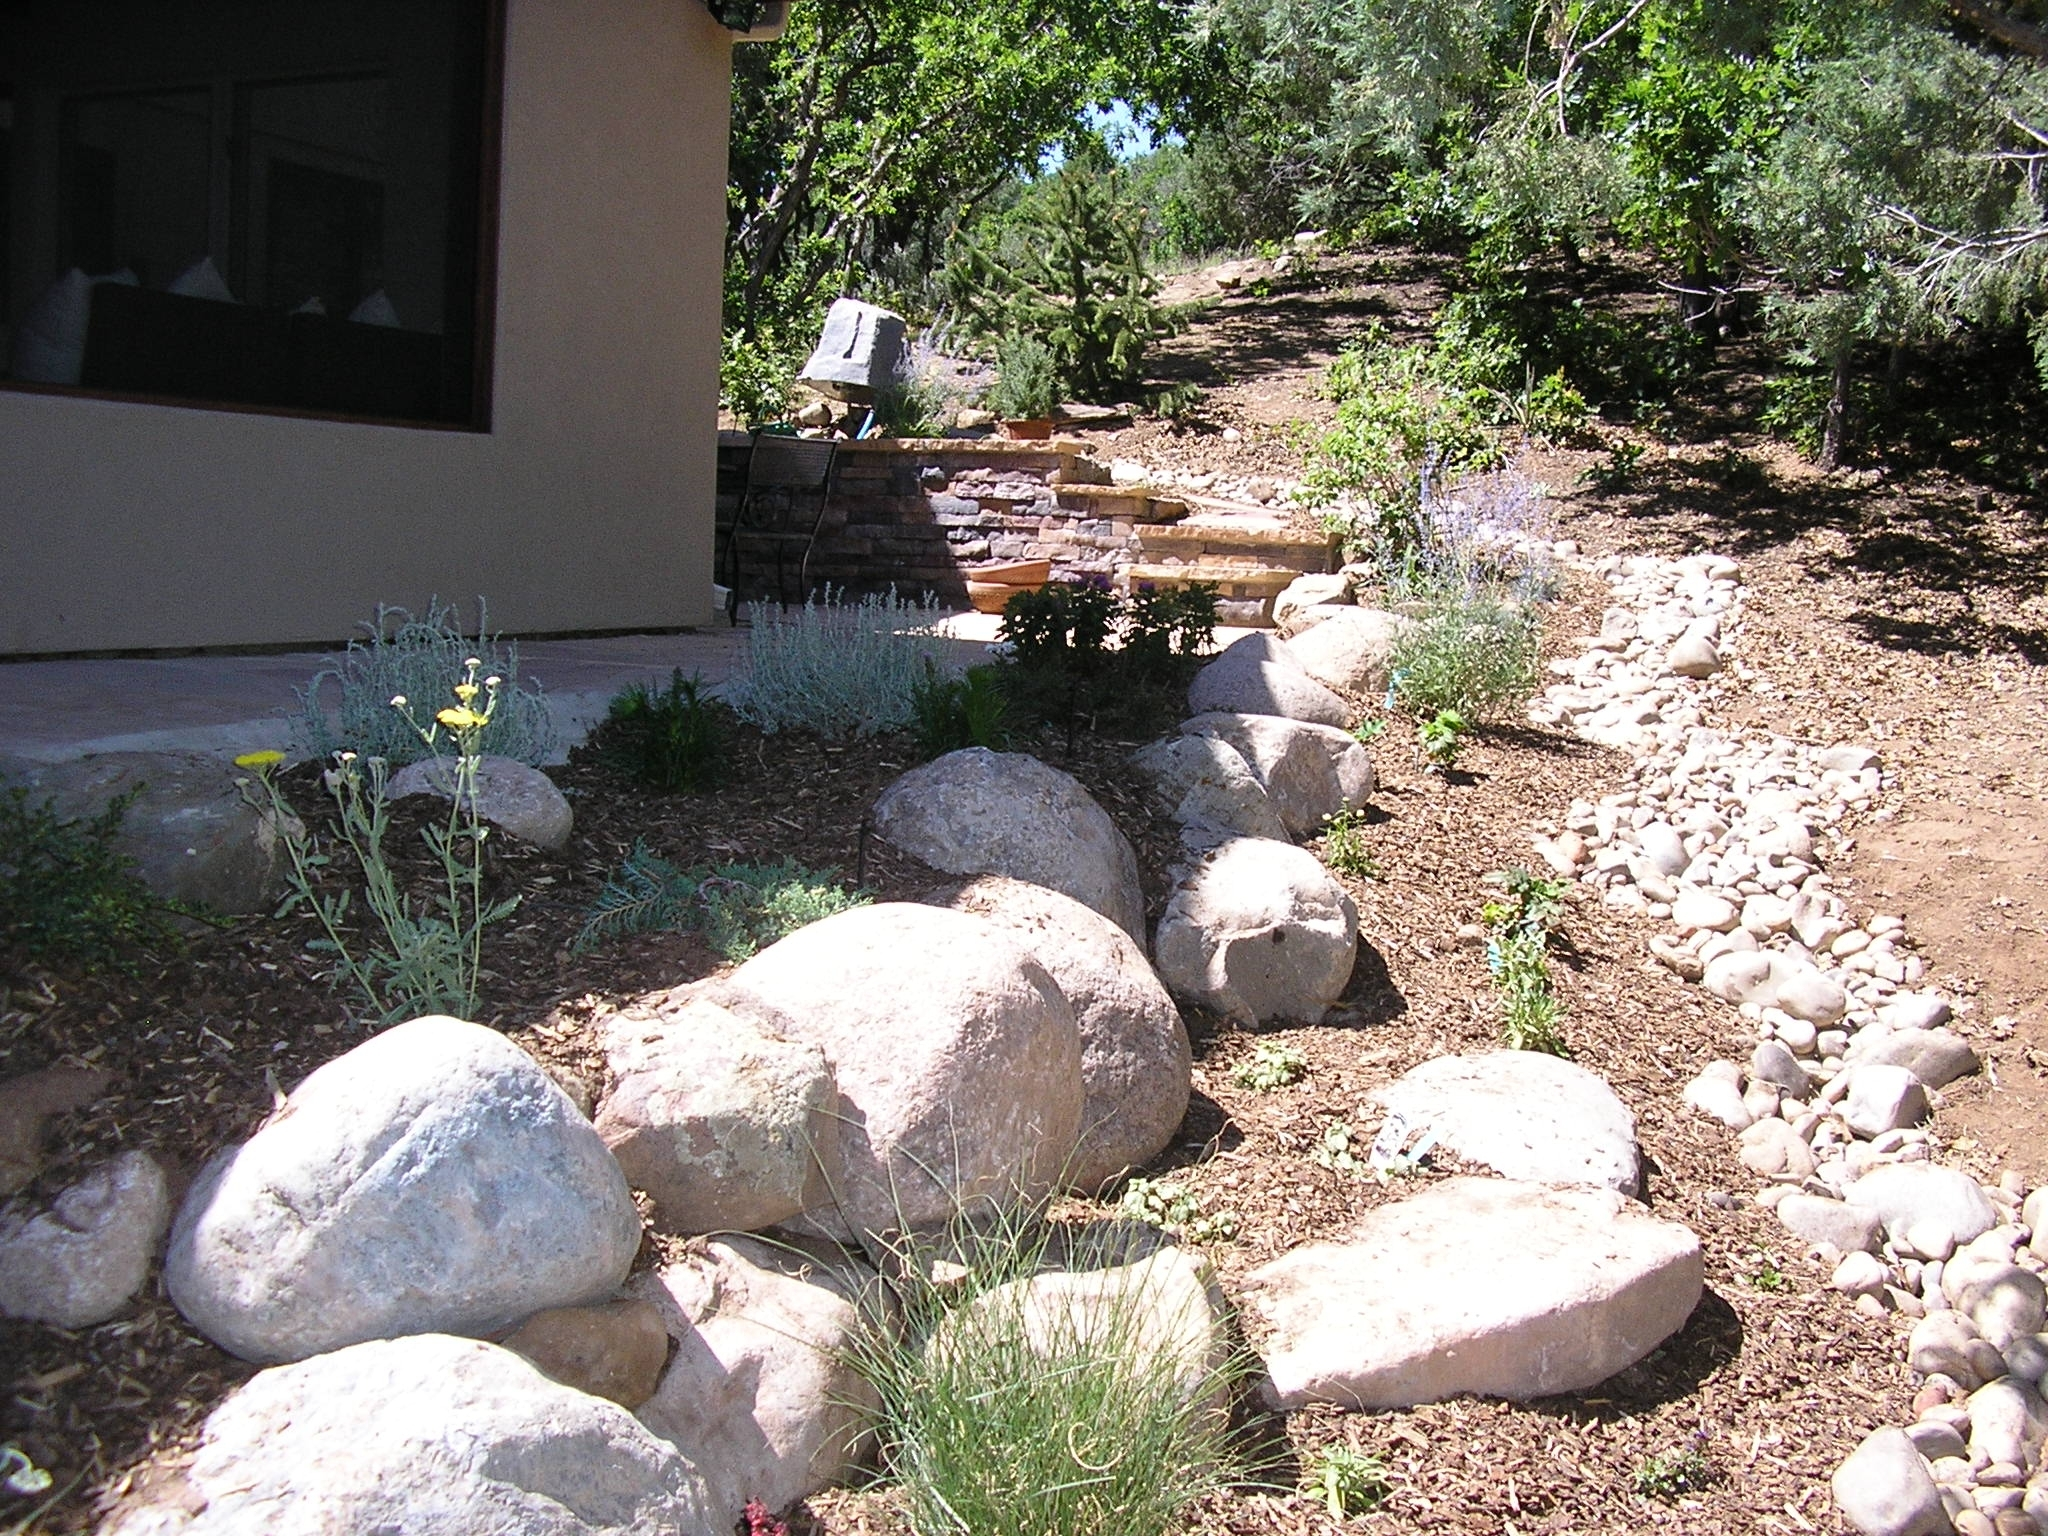 Image of: Drainage Swale Also Used Woodchips And Ground Cover To Be Within Drainage Ditch Landscaping Ideas Natural Drainage Ditch Landscaping Ideas